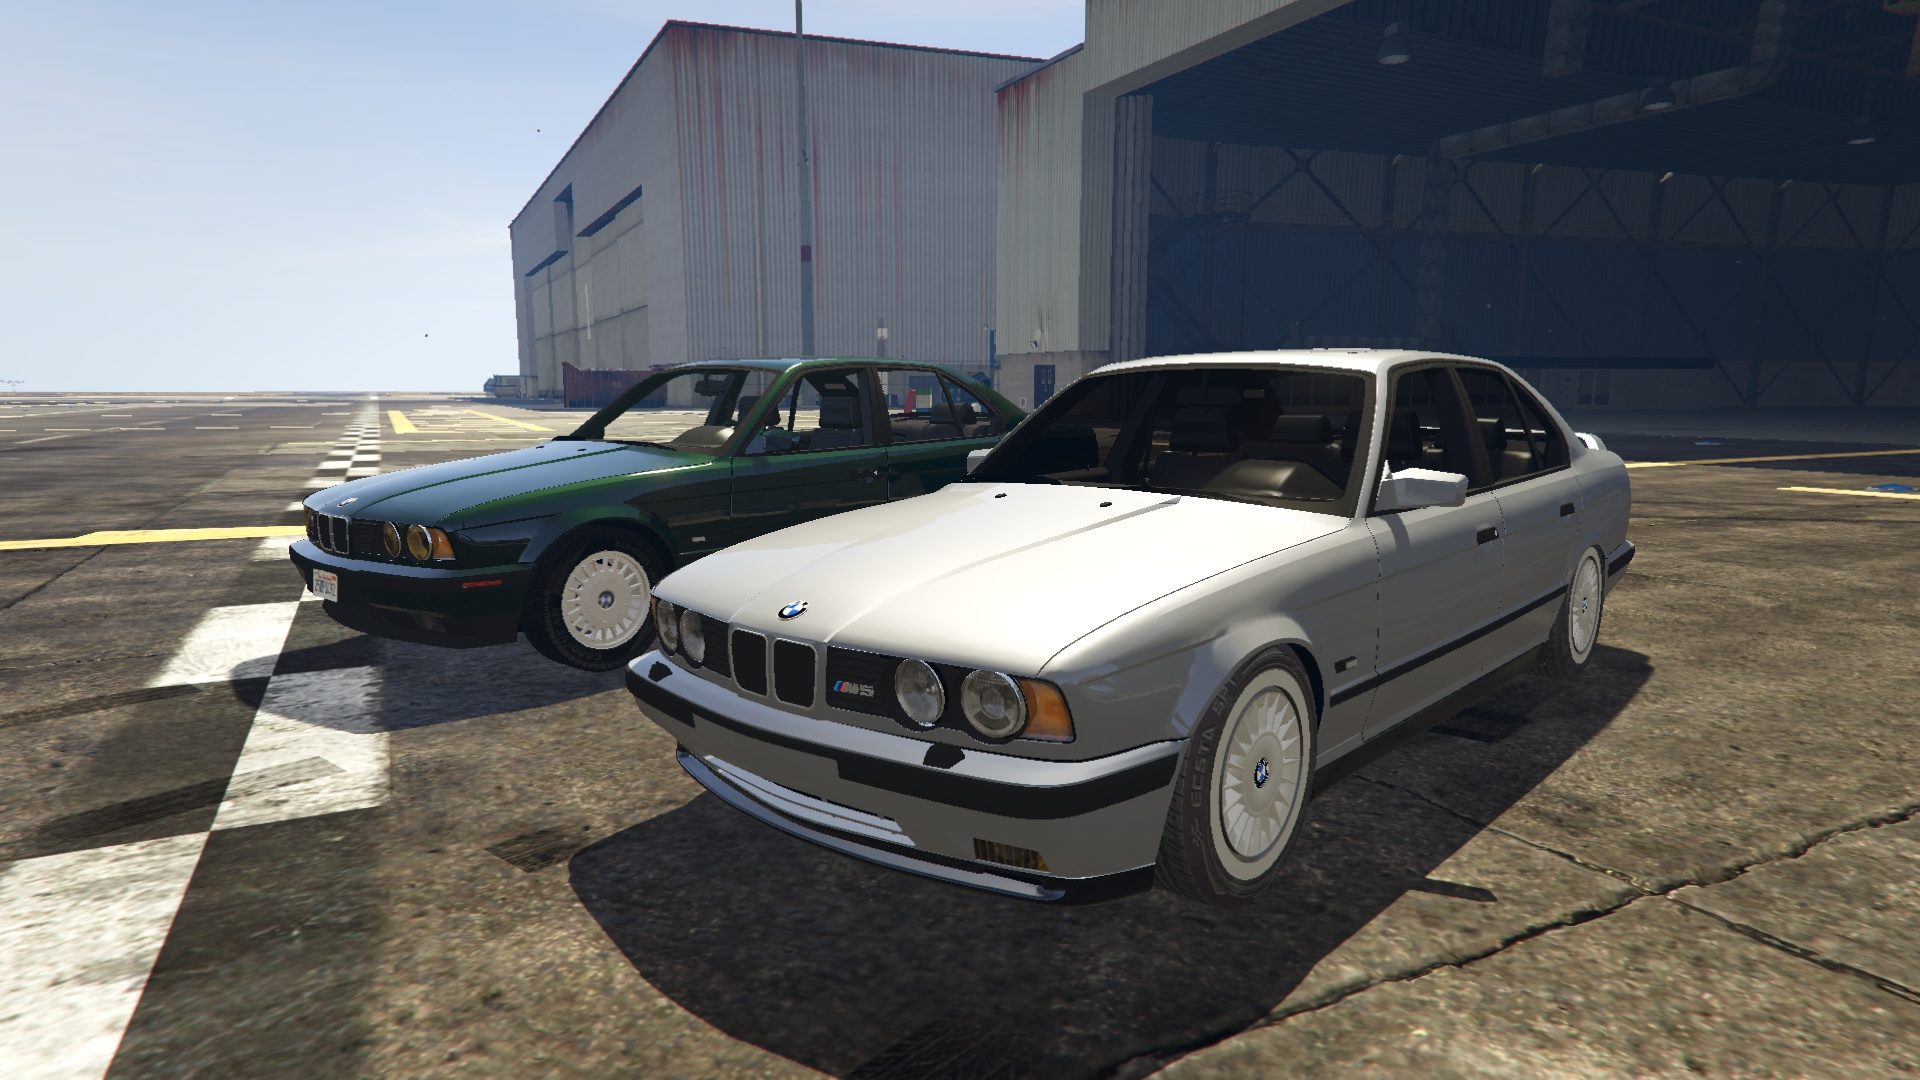 bmw e34 1991 m5 bmw m3 e36 touring gta5. Black Bedroom Furniture Sets. Home Design Ideas